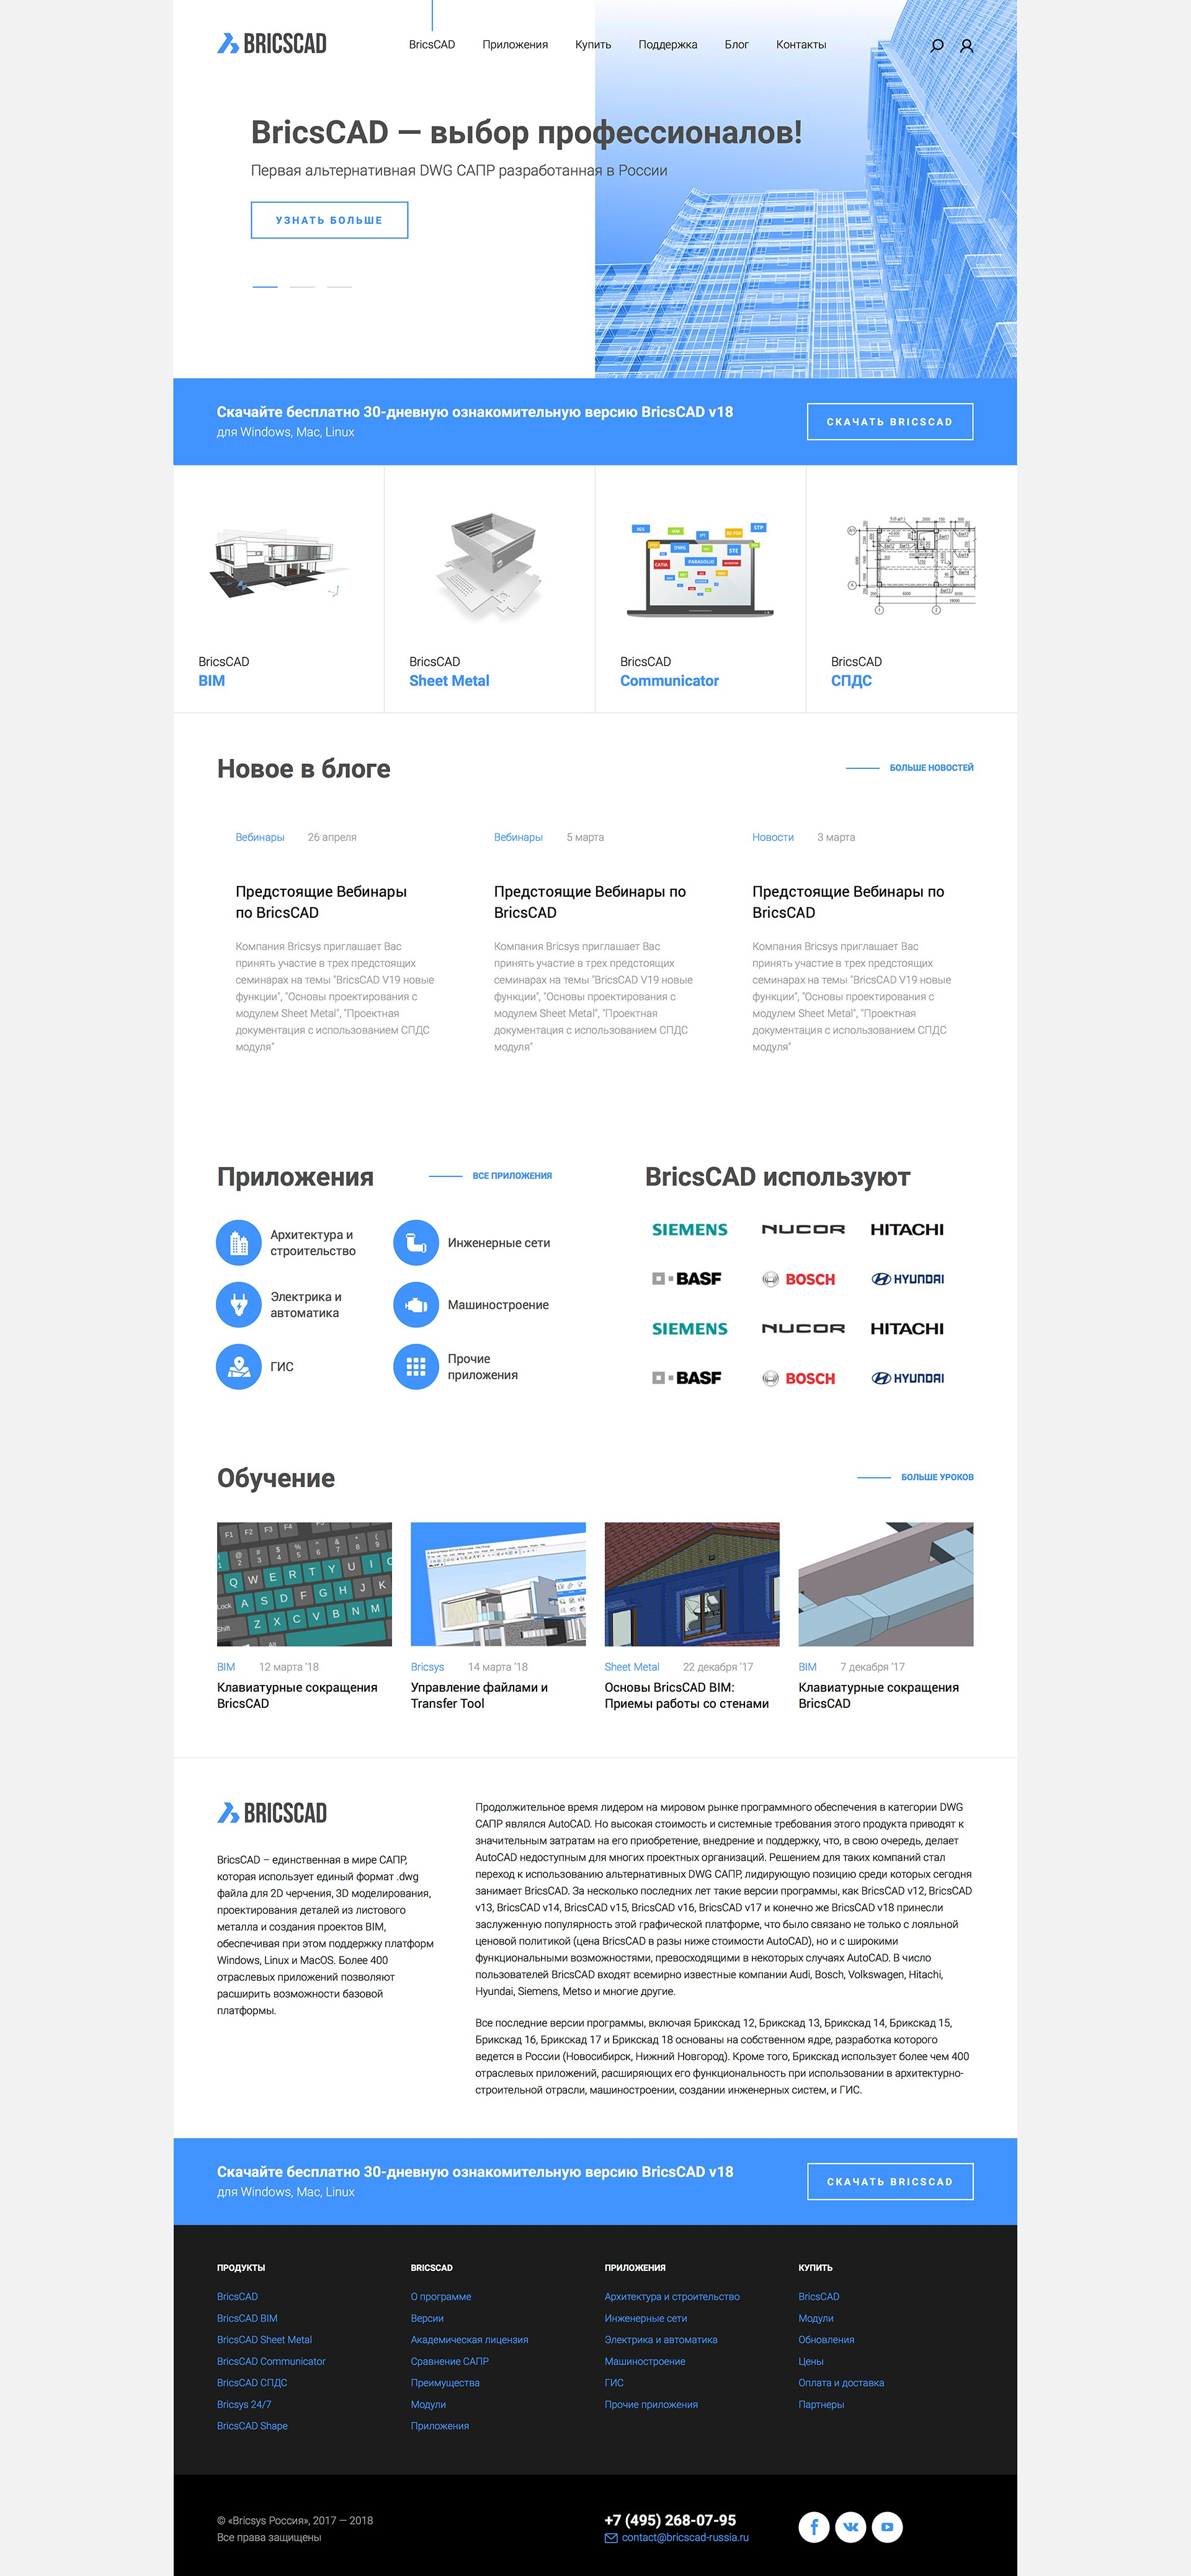 Bricsys №1 - Main page